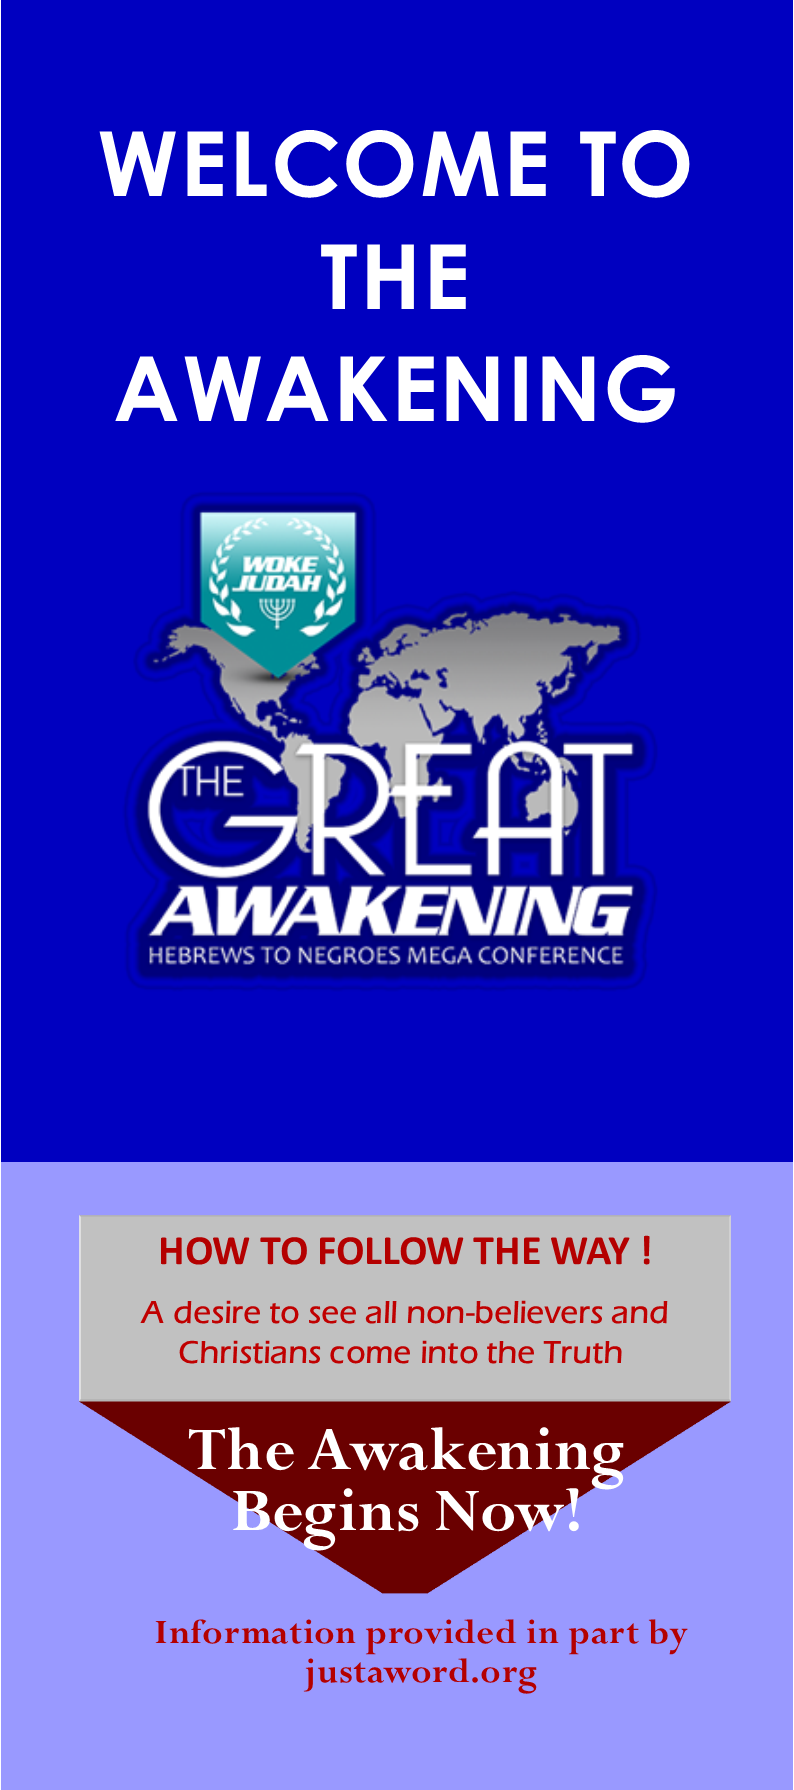 WELCOME TO THE AWAKENING TRACT